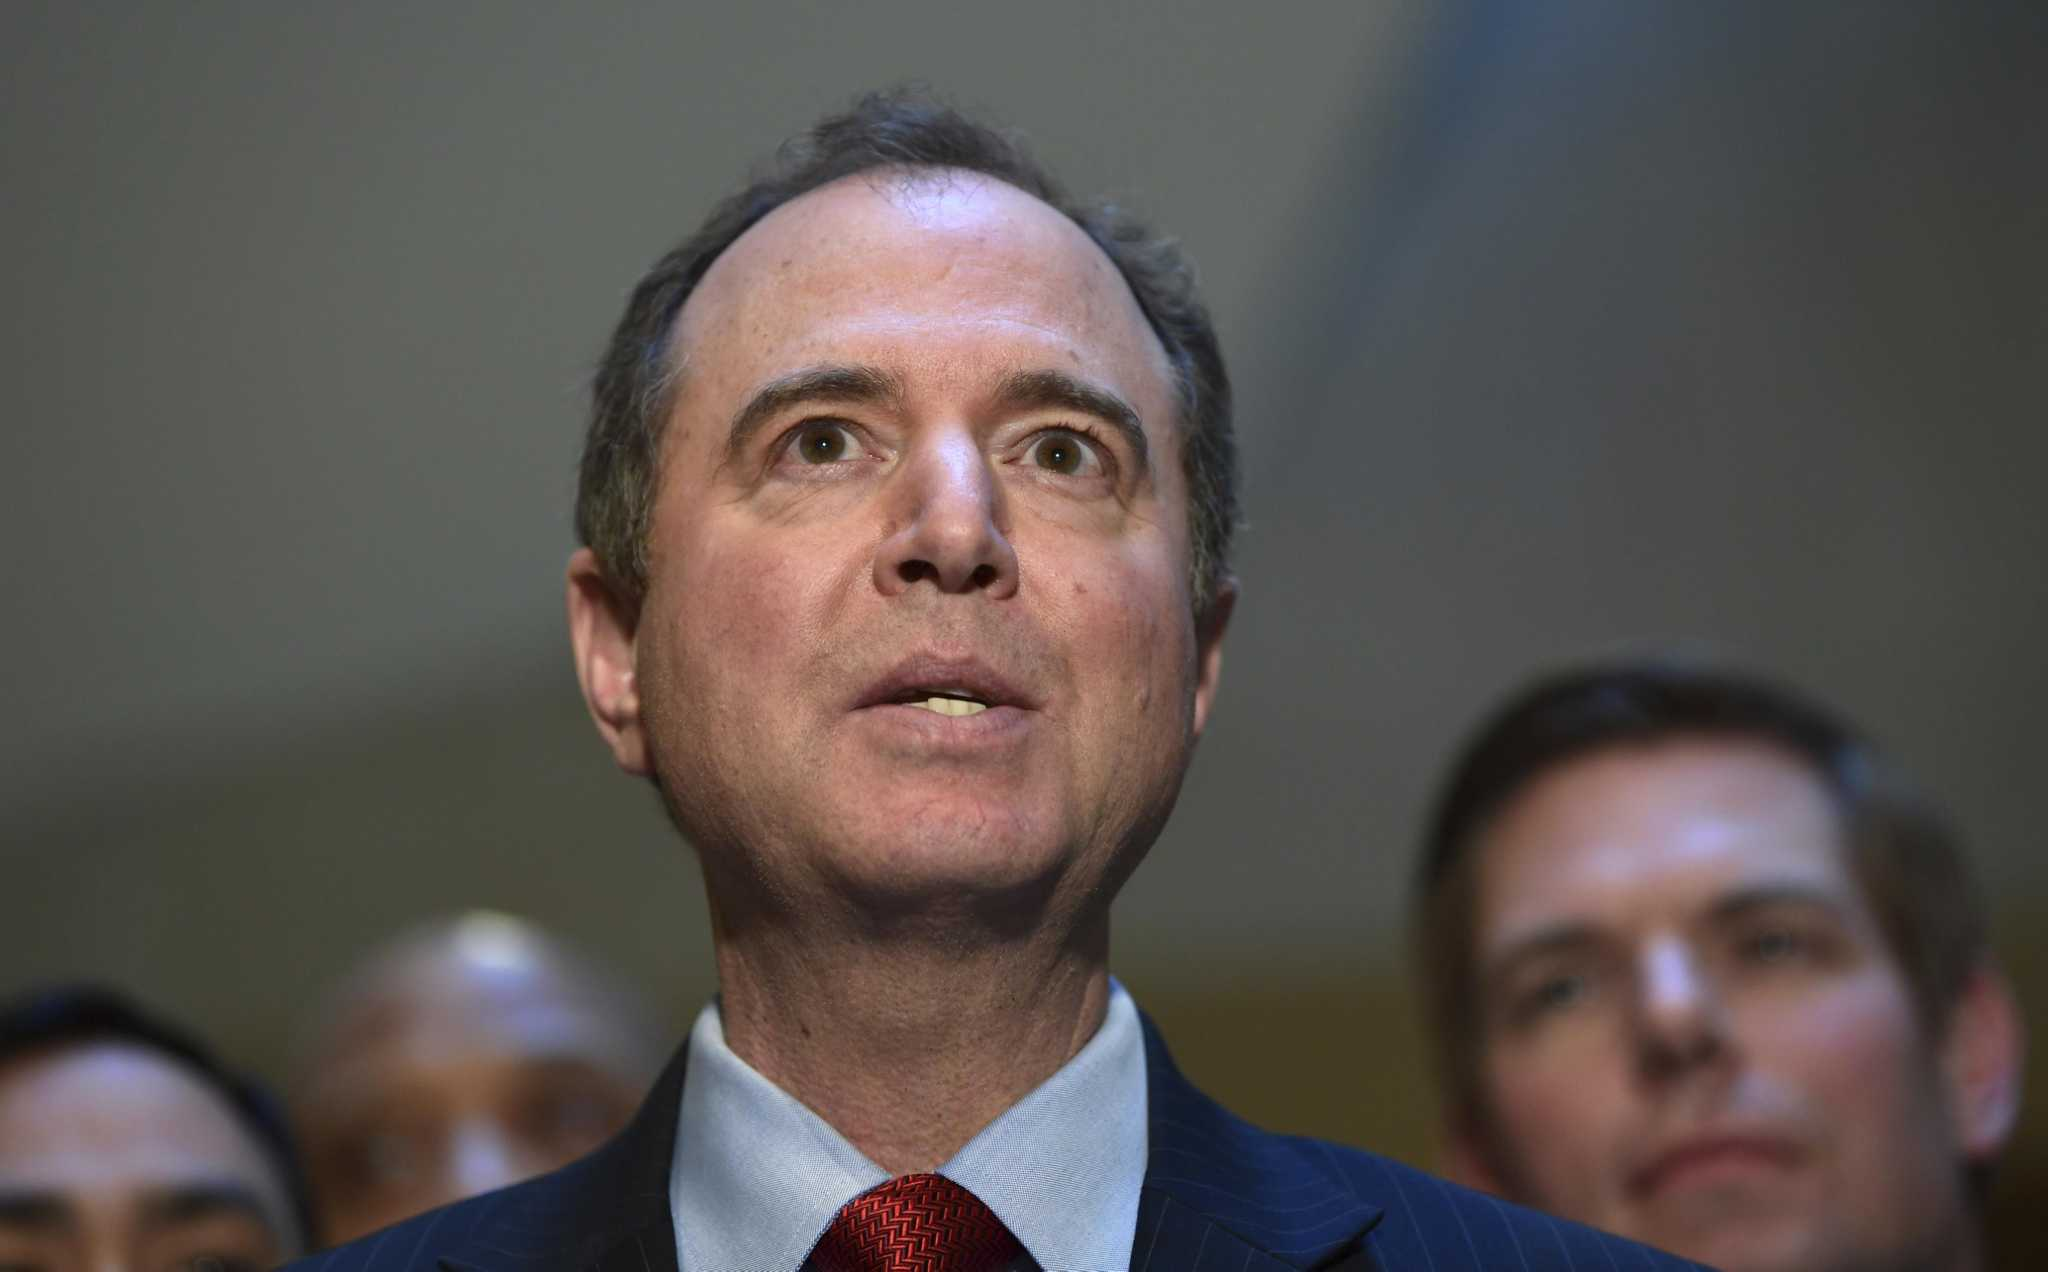 Schiff: To my Republican colleagues [Opinion]